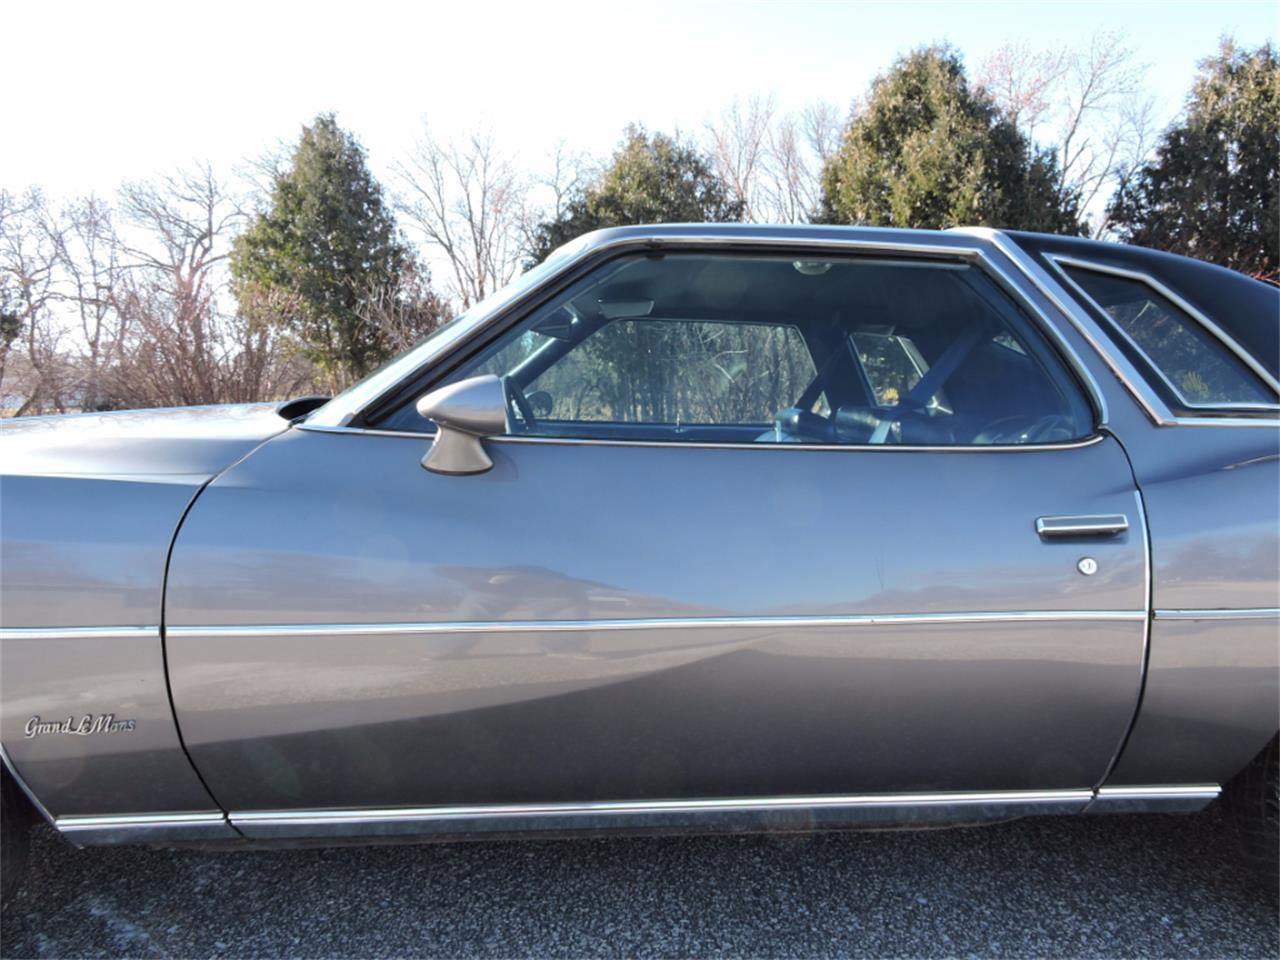 1977 Pontiac Grand LeMans for sale in Greene, IA – photo 45